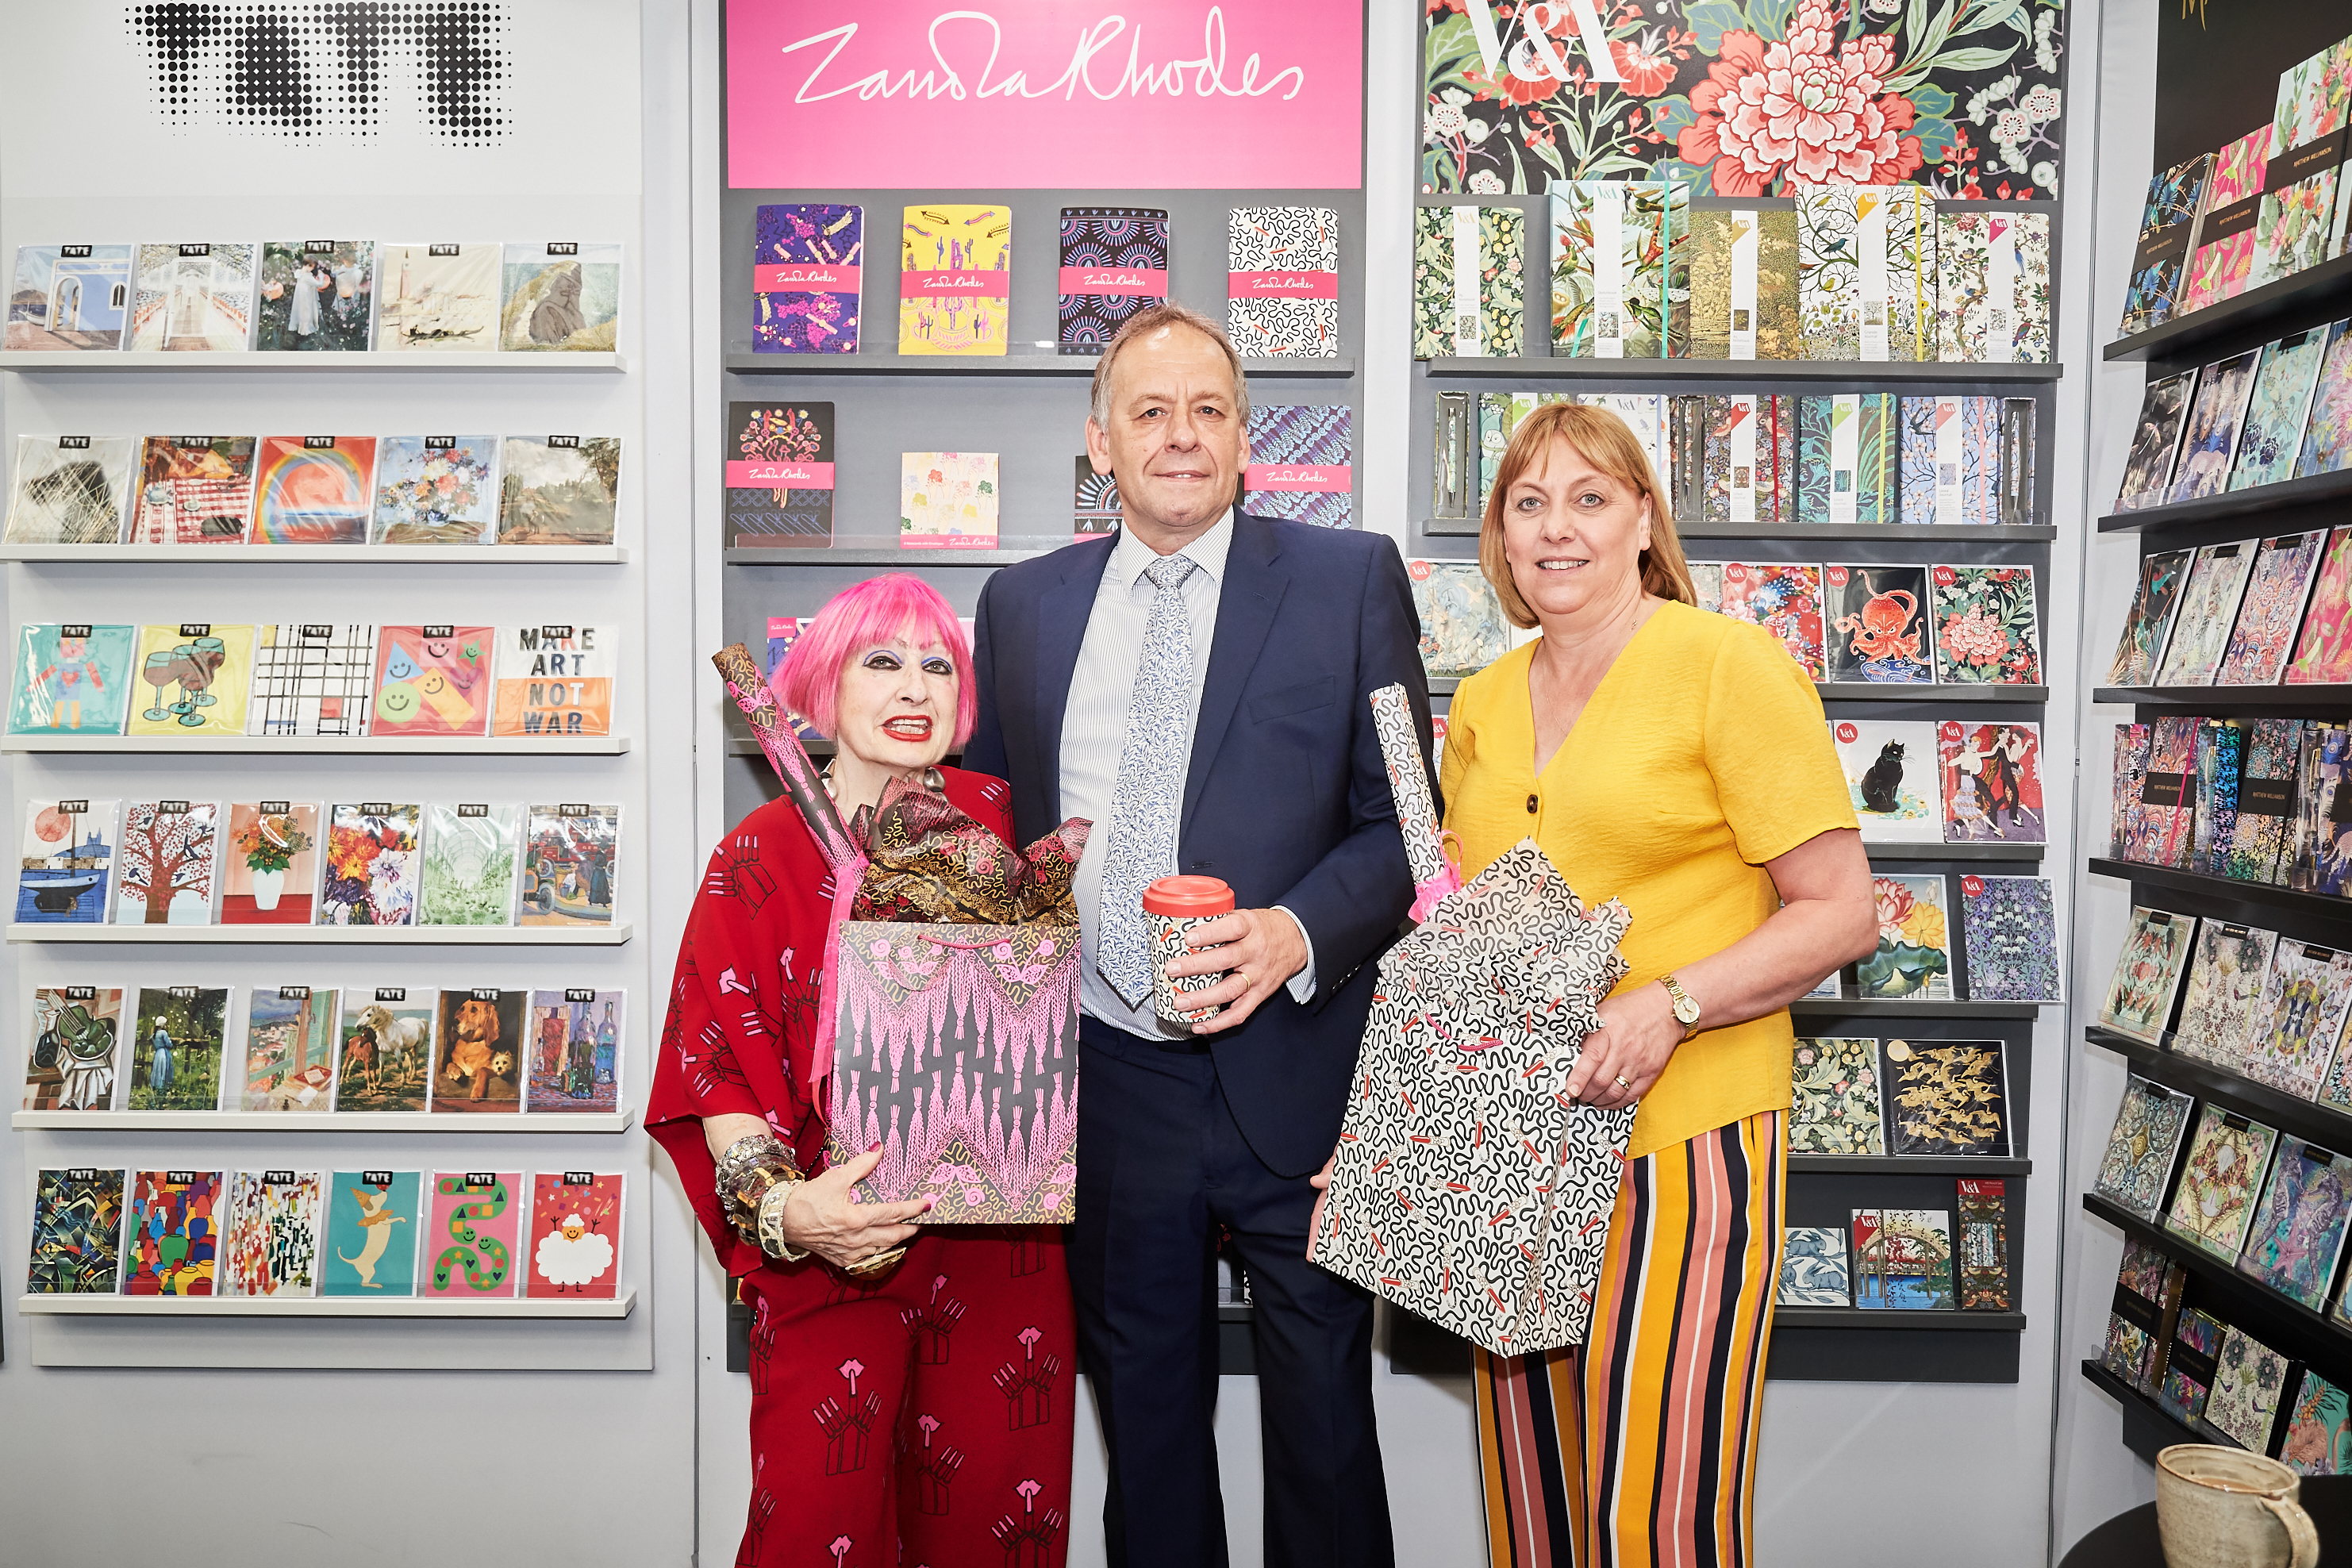 Above: Dame Zandra Rhodes with Museums & Galleries' co-owners Debbie and Alan Williams.